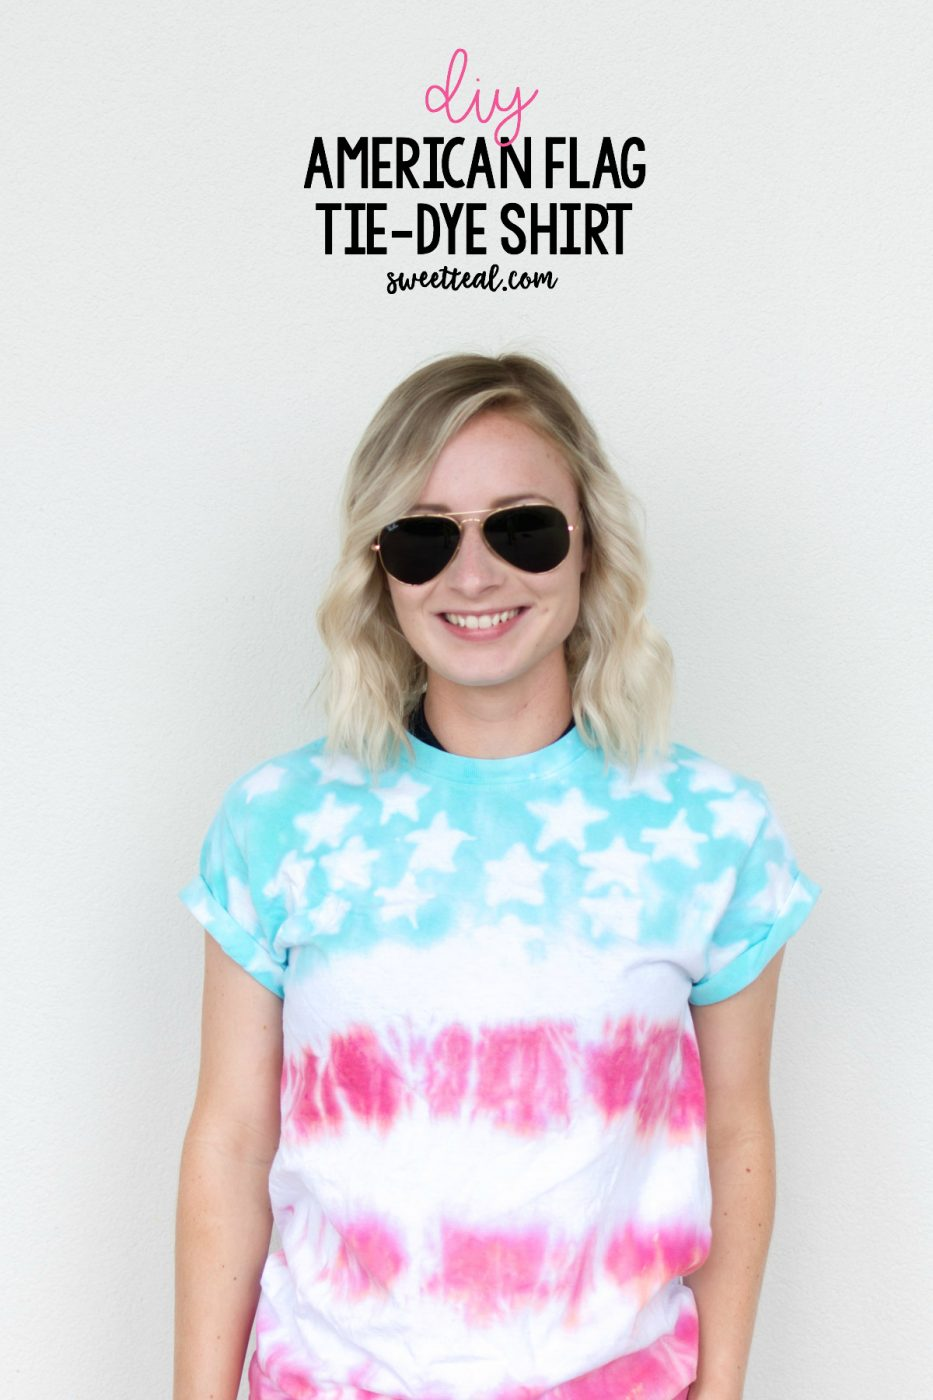 VIDEO TUTORIAL of a DIY American Flag Tie Dye Shirt by Jenny of Sweet Teal